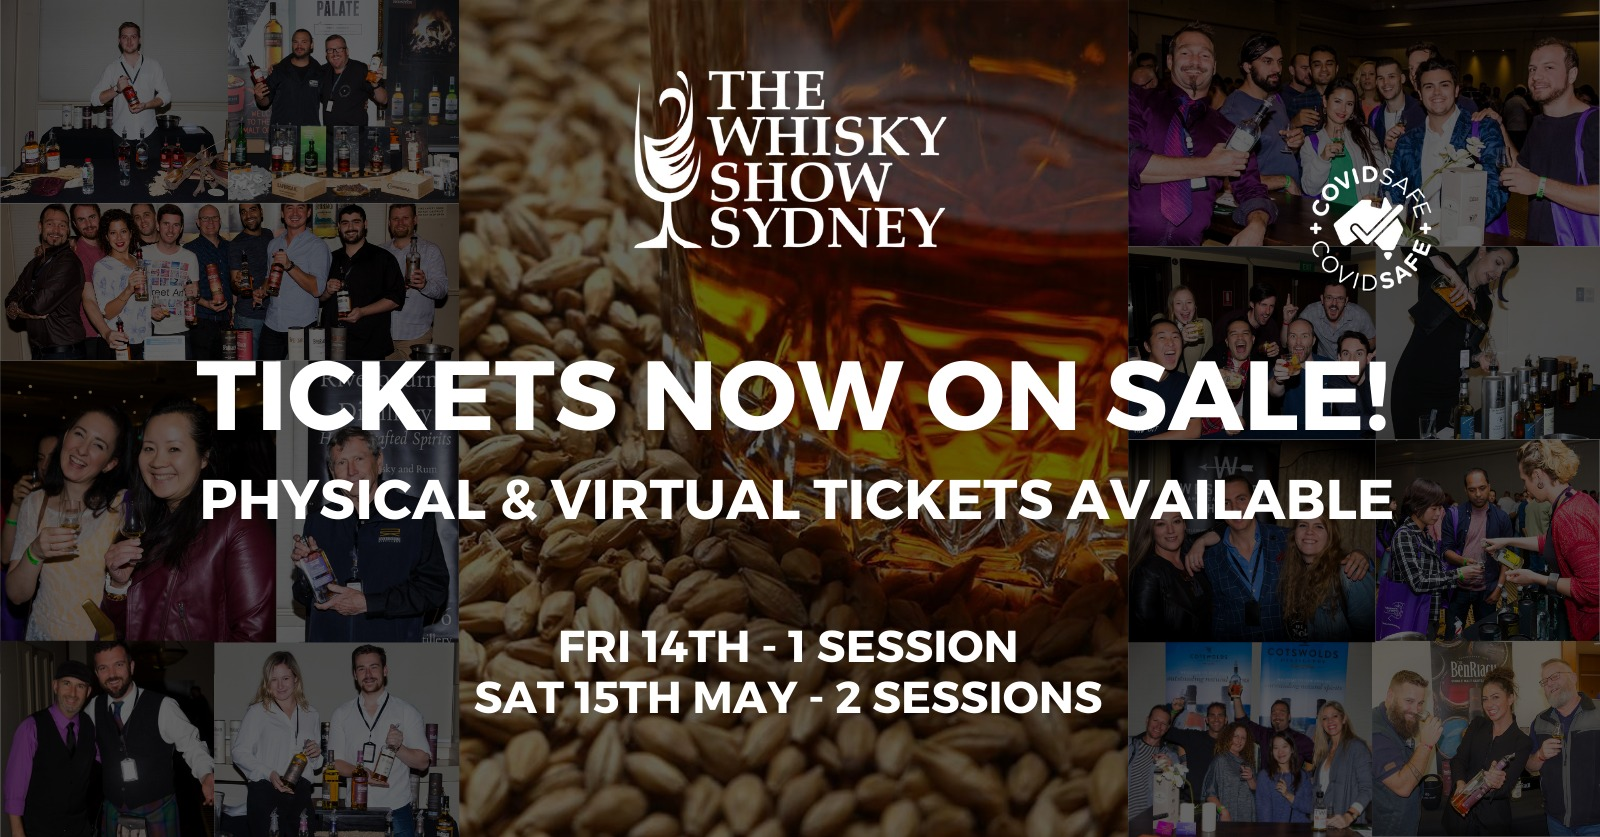 The Whisky Show Sydney 2021